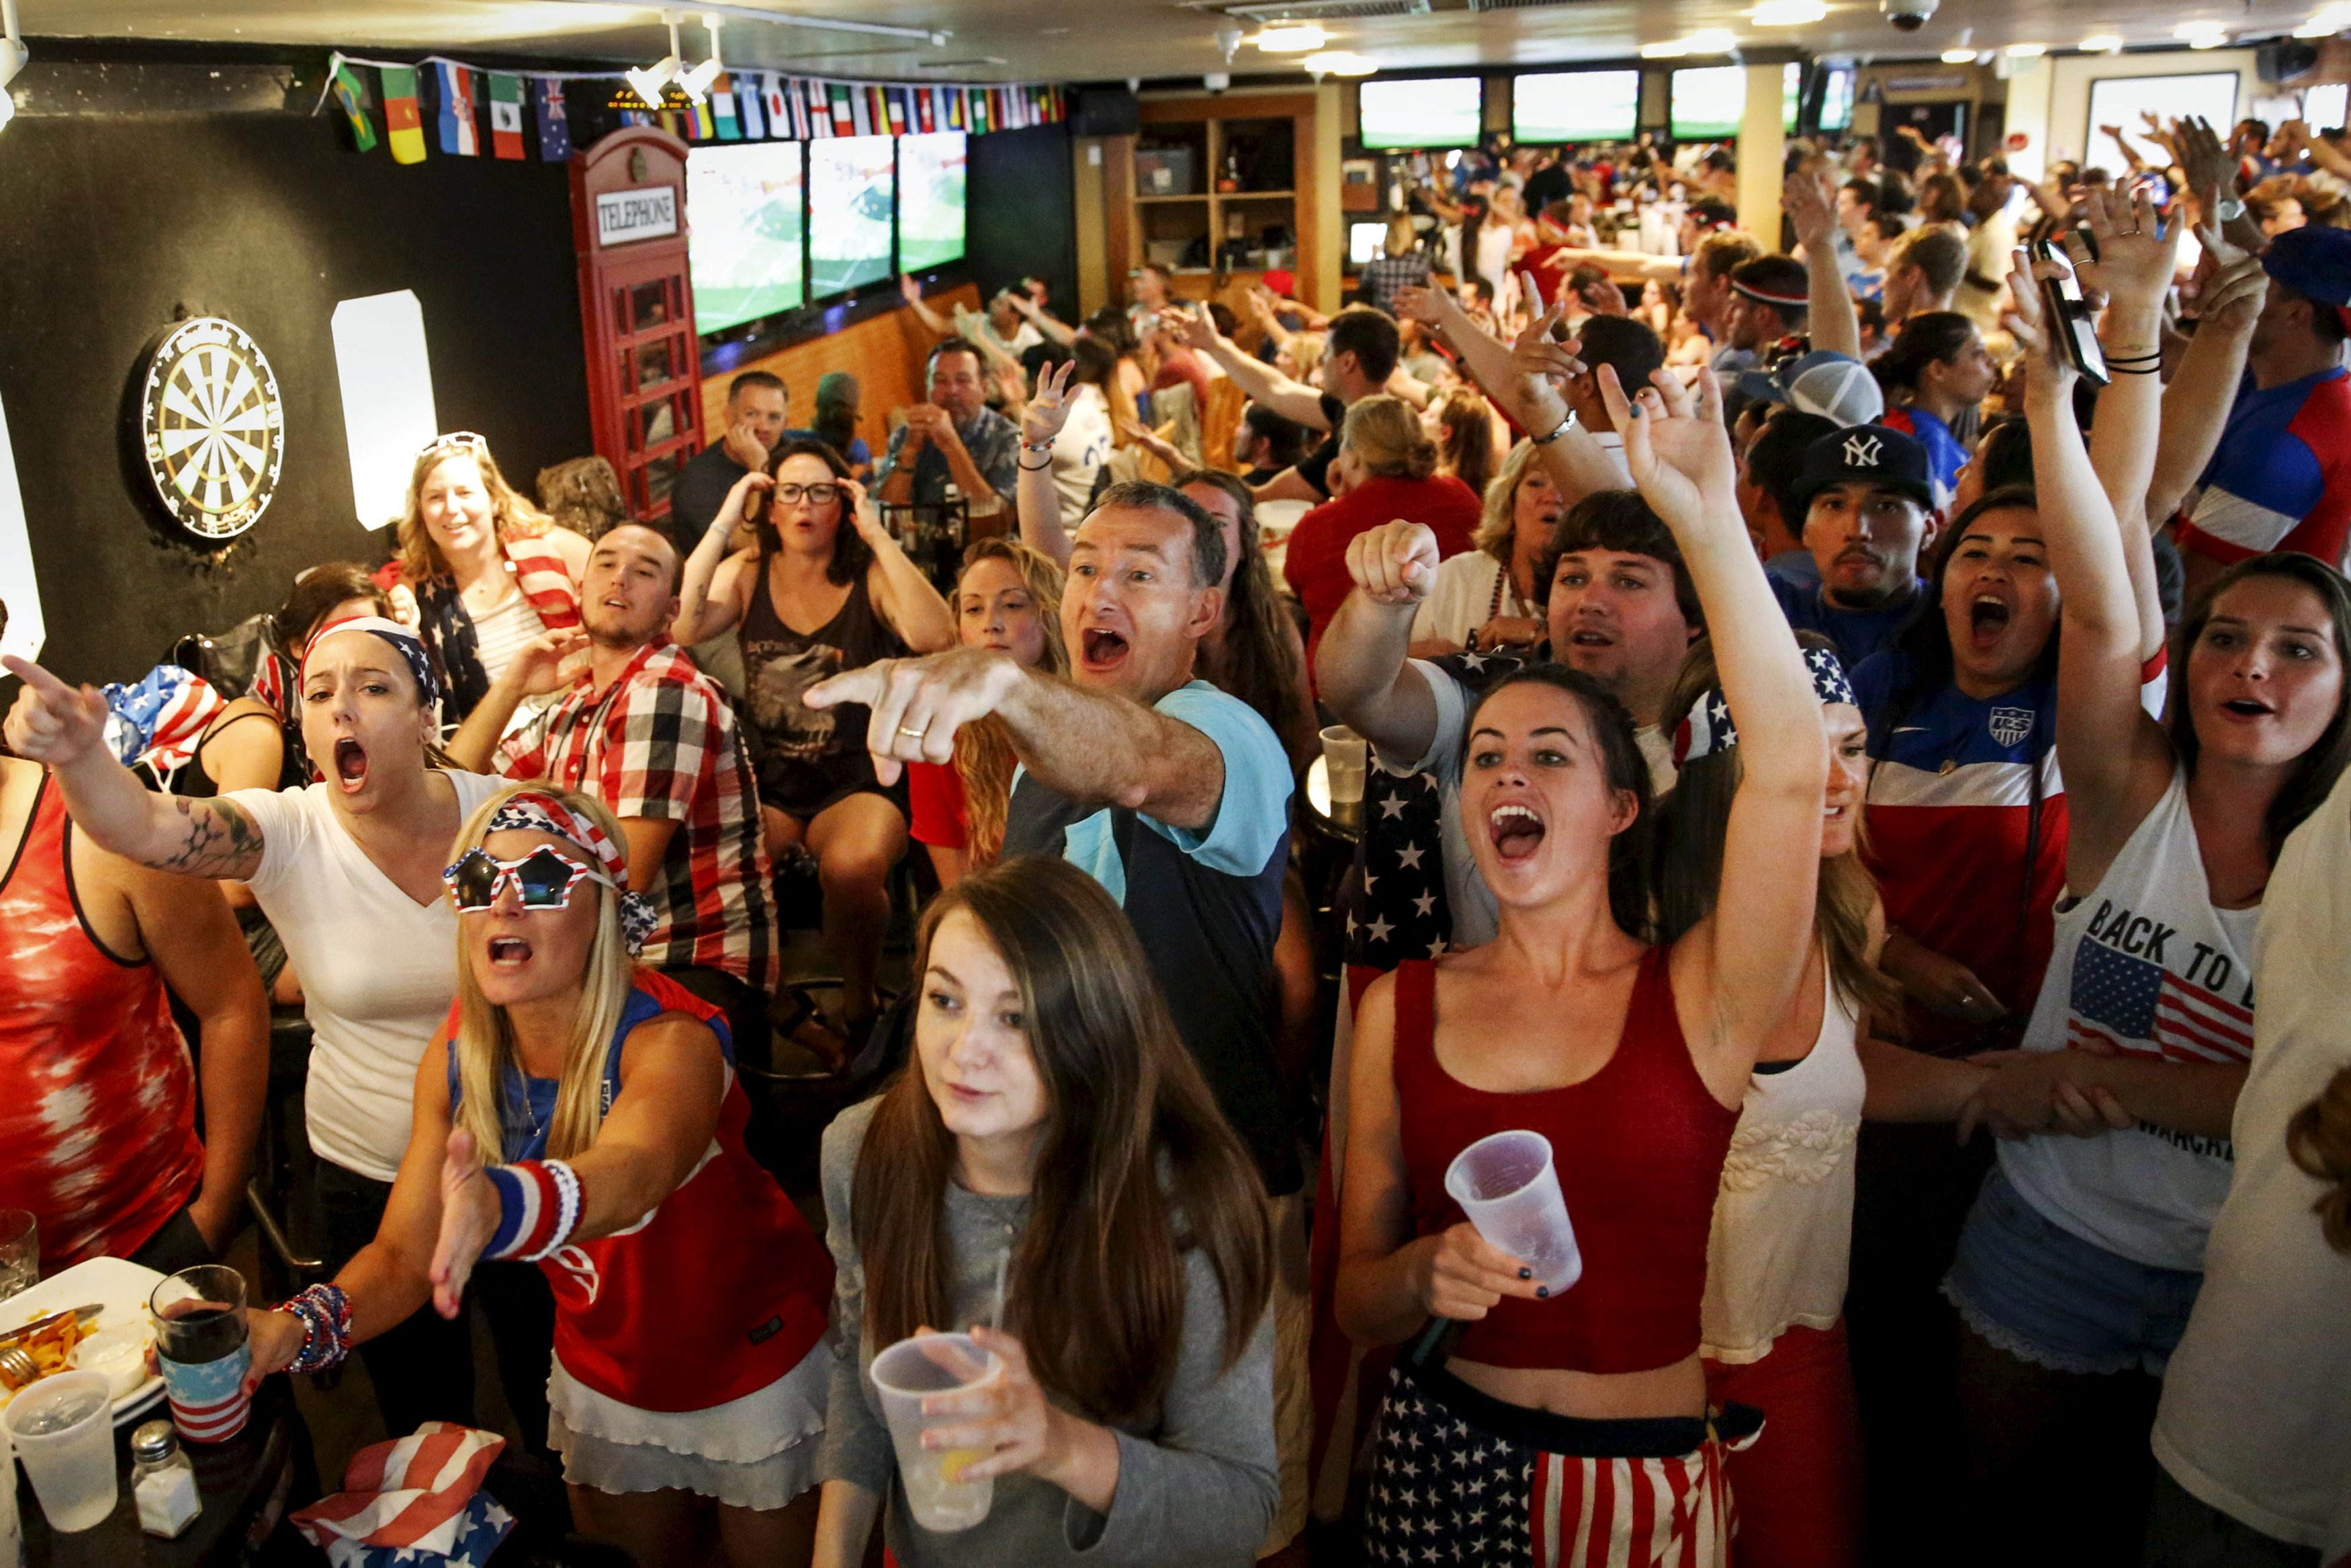 US fans watch the women's World Cup final against Japan on a monitor inside a bar. Fox scored a ratings coup with a record 25.4 million viewers. Photo: Reuters